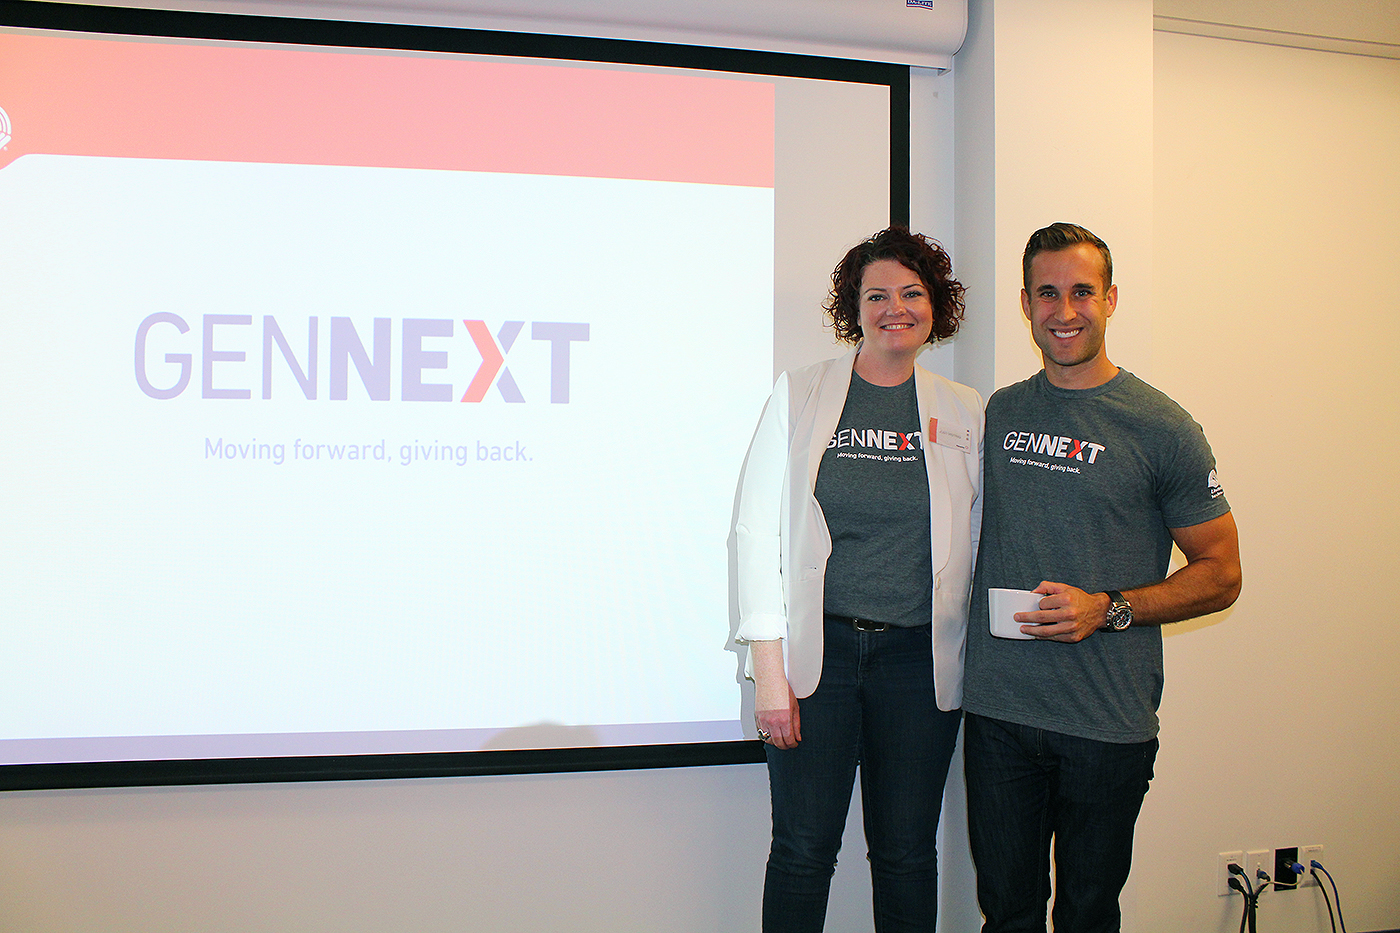 an ideal workplace for gennext initiatives the works an ideal workplace for gennext initiatives